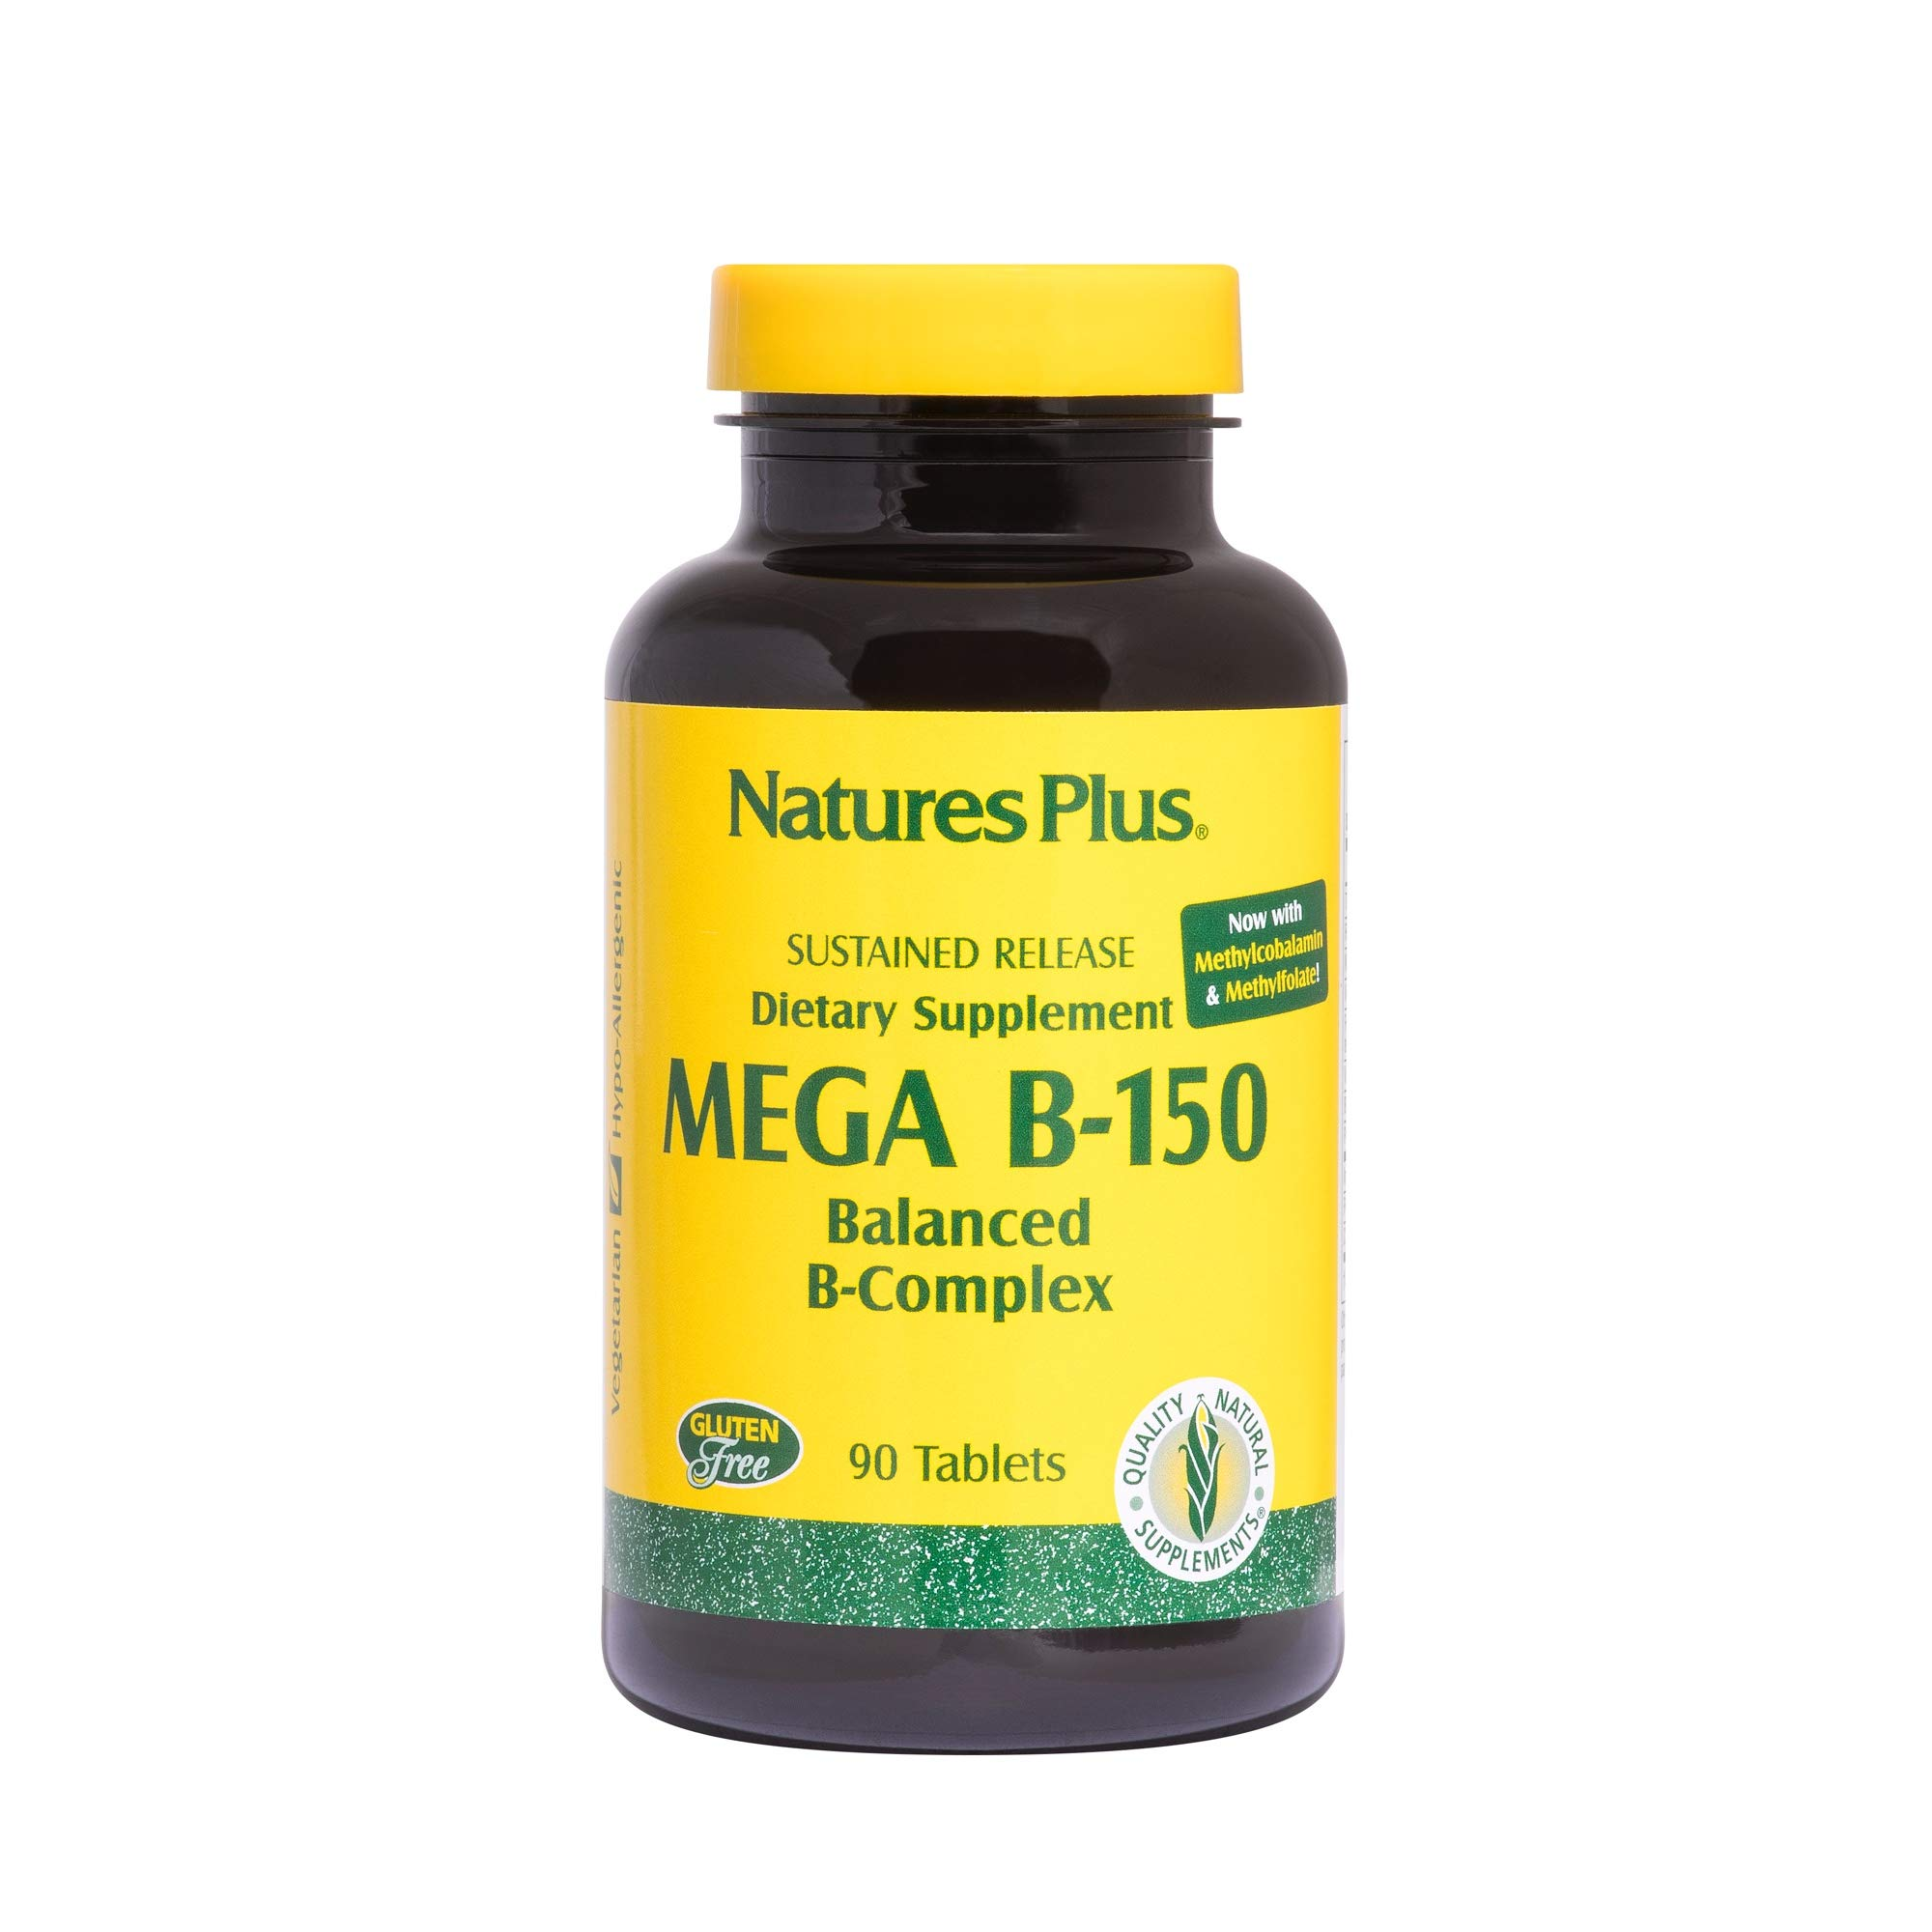 NaturesPlus Mega B150 Complex, Sustained Release - 90 Vegetarian Tablets - Maximum Potency B Complex Vitamin Supplement, Energy & Brain Booster, Stress Reliever - Gluten-Free - 90 Servings